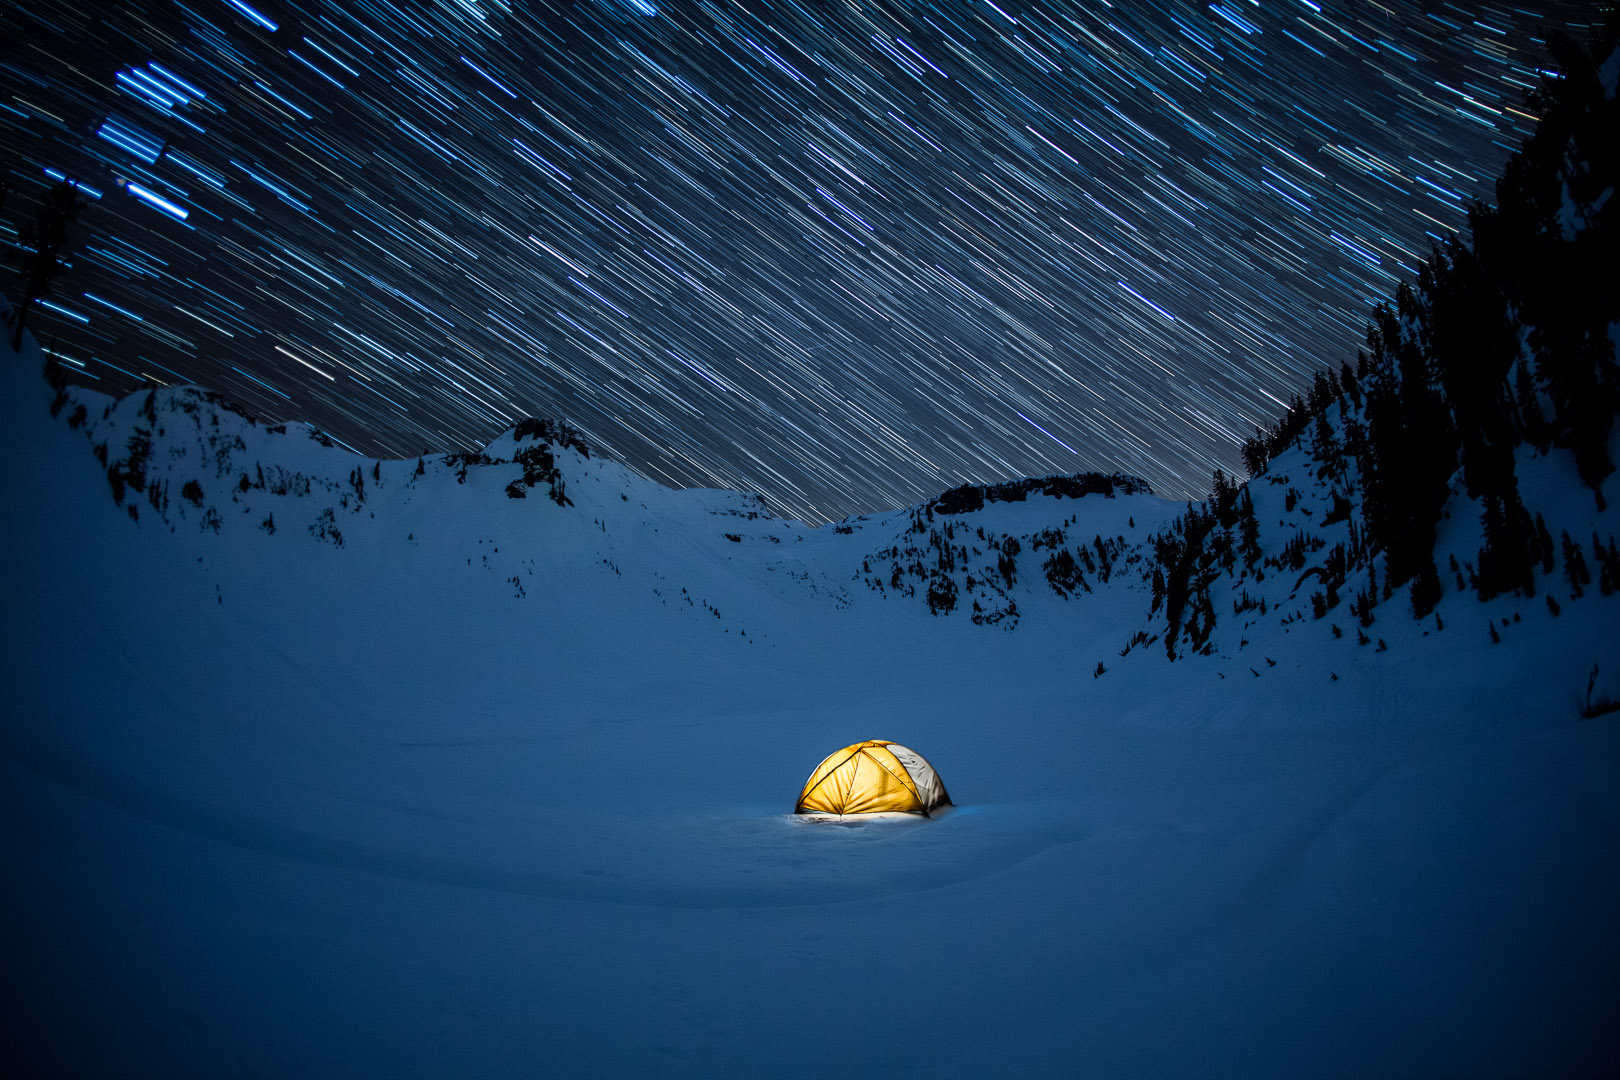 Outdoor Backcountry Camping